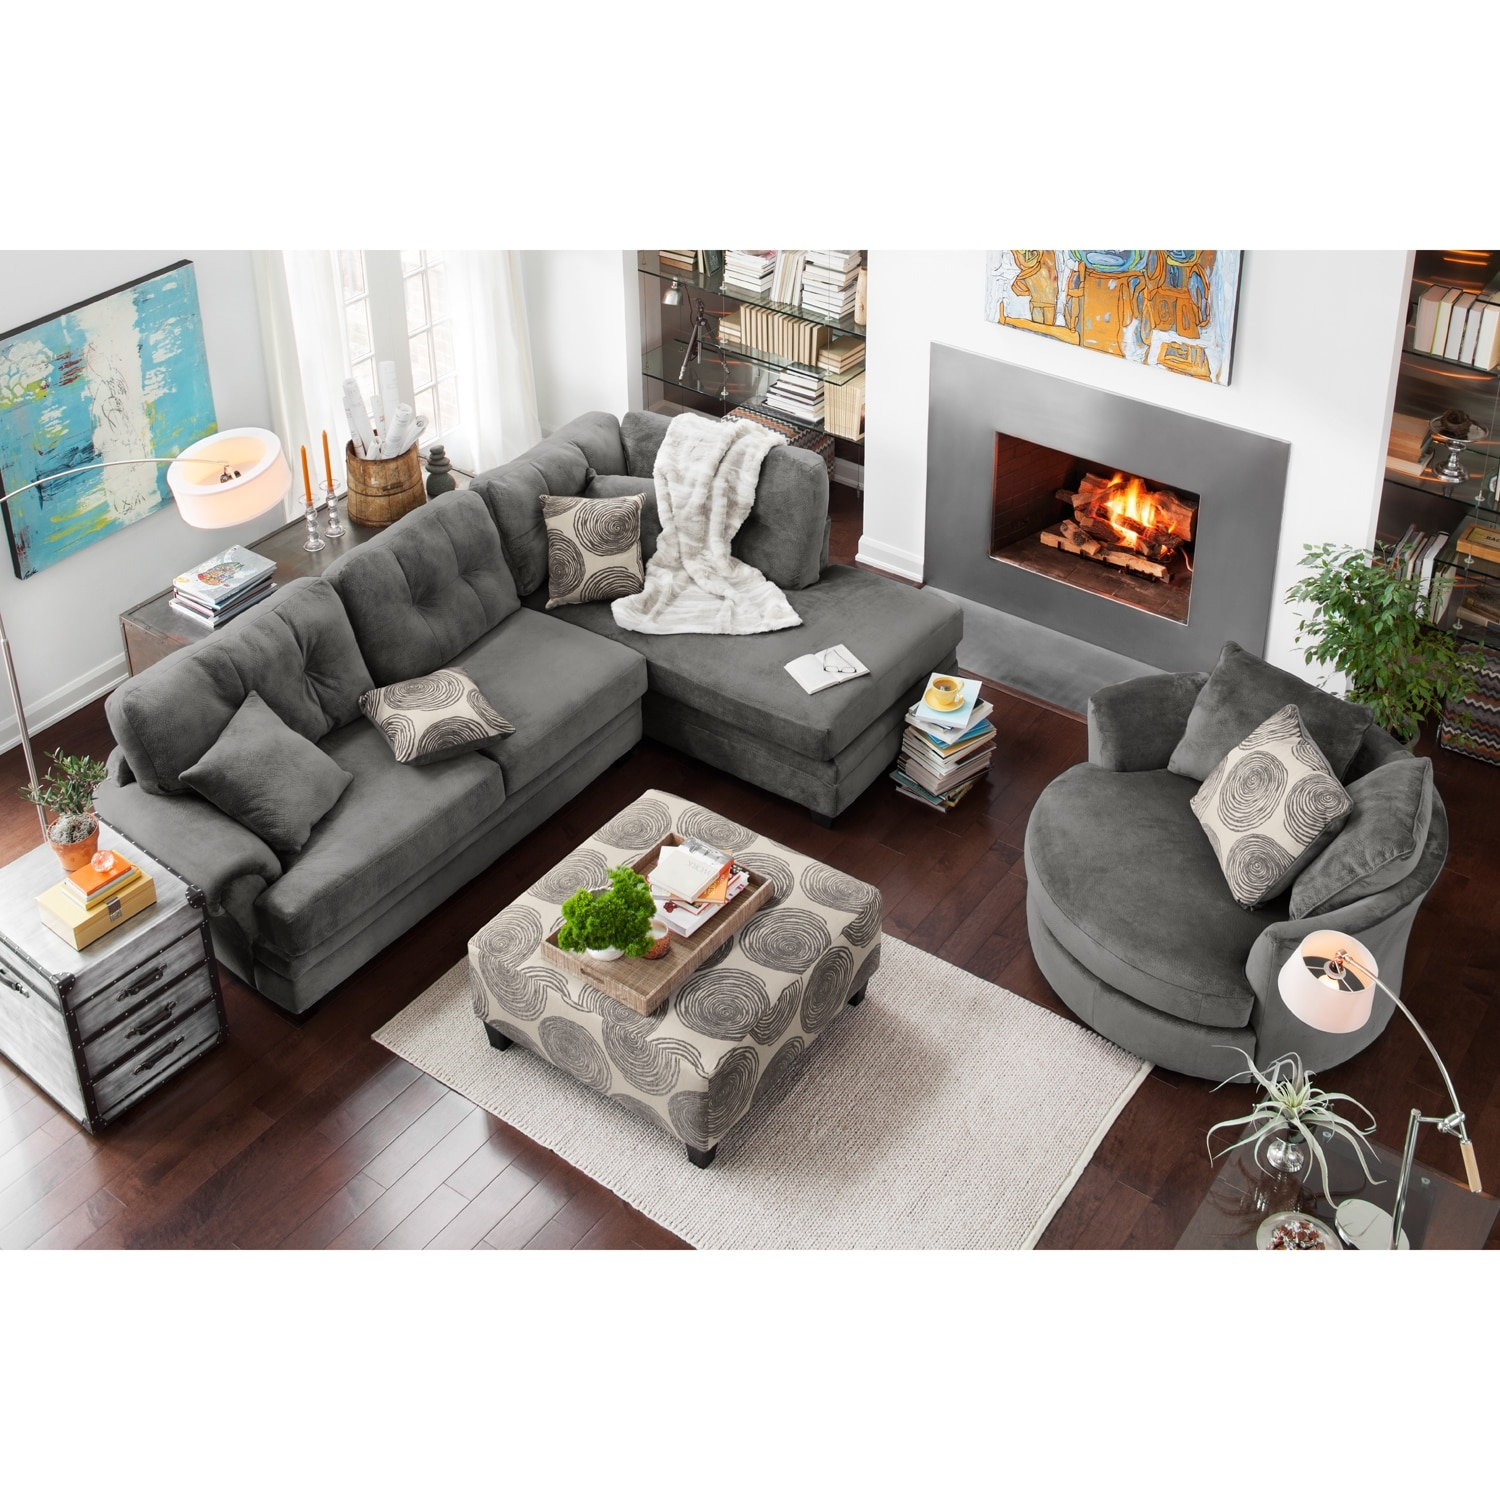 Cordelle 2 piece sectional with right facing chaise gray - Pictures of living rooms with sectionals ...